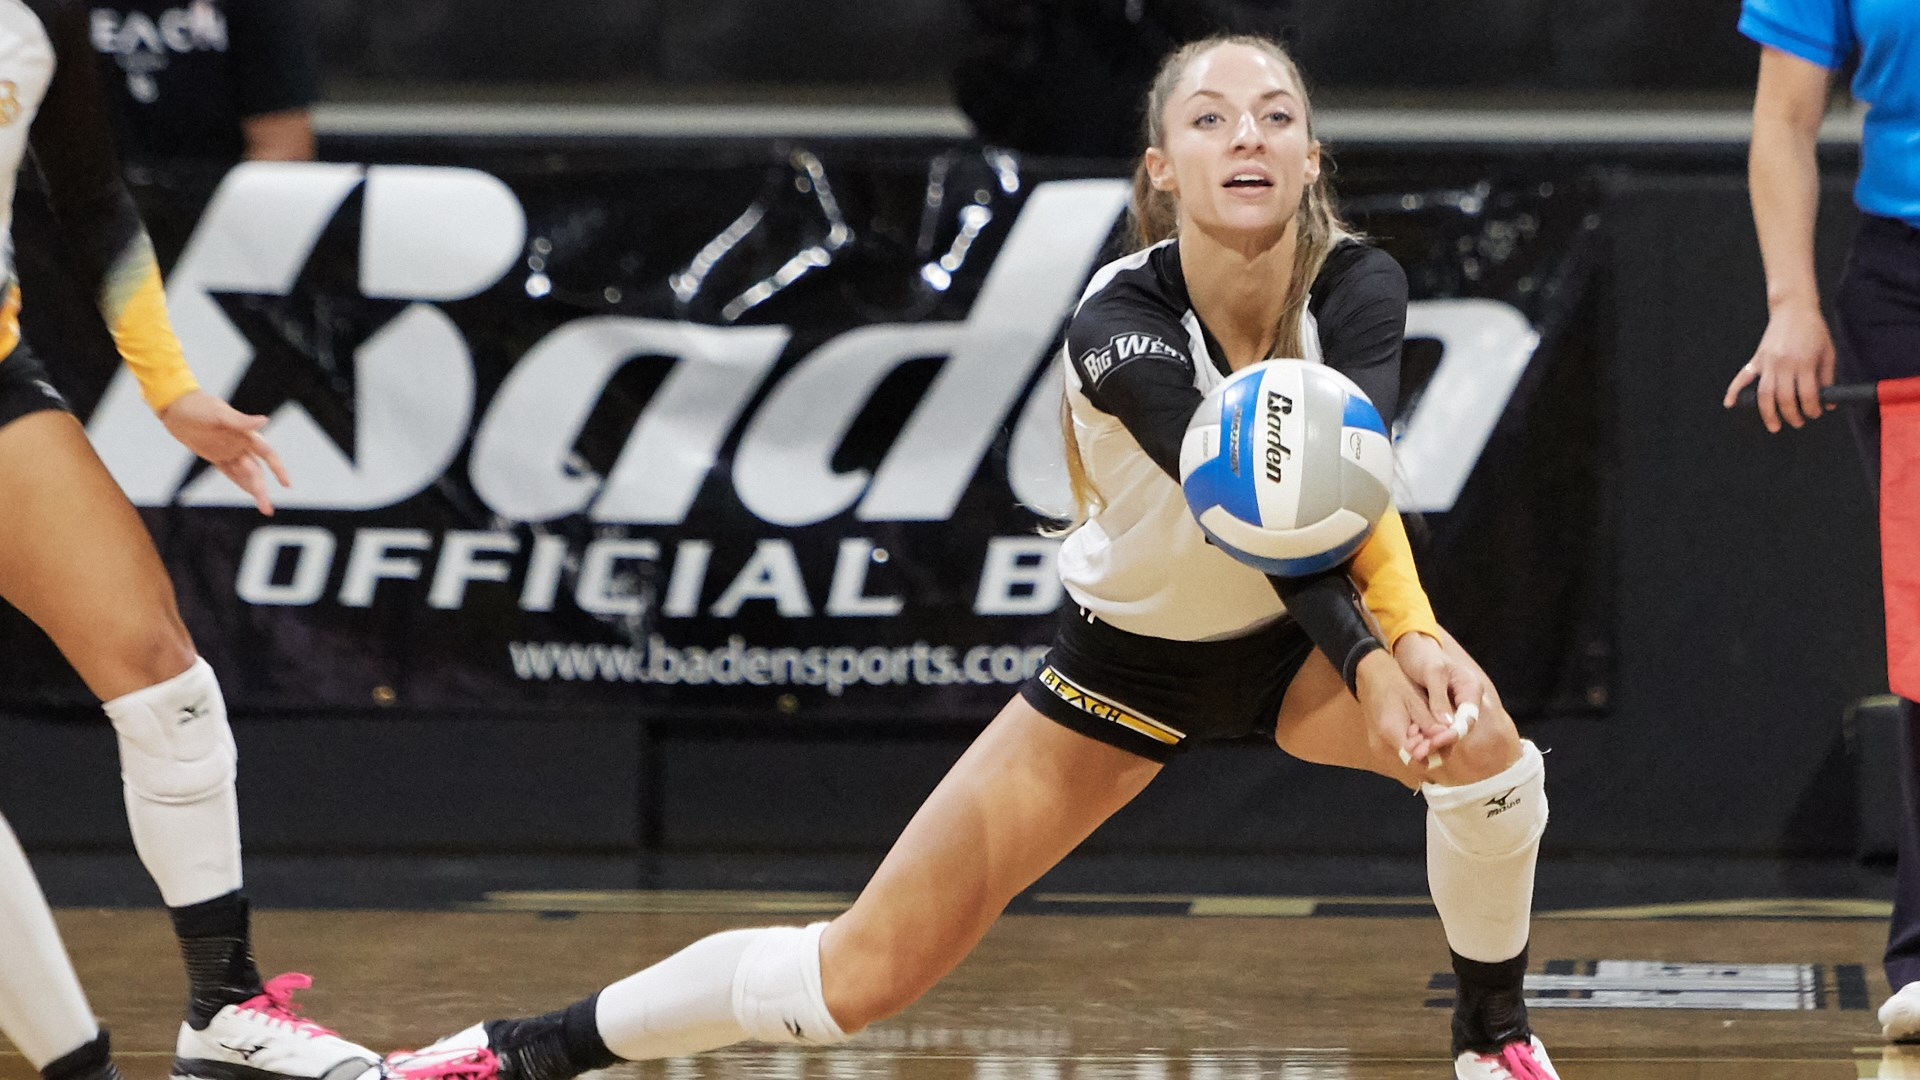 Megan Kruidhof Women S Volleyball Long Beach State University Athletics